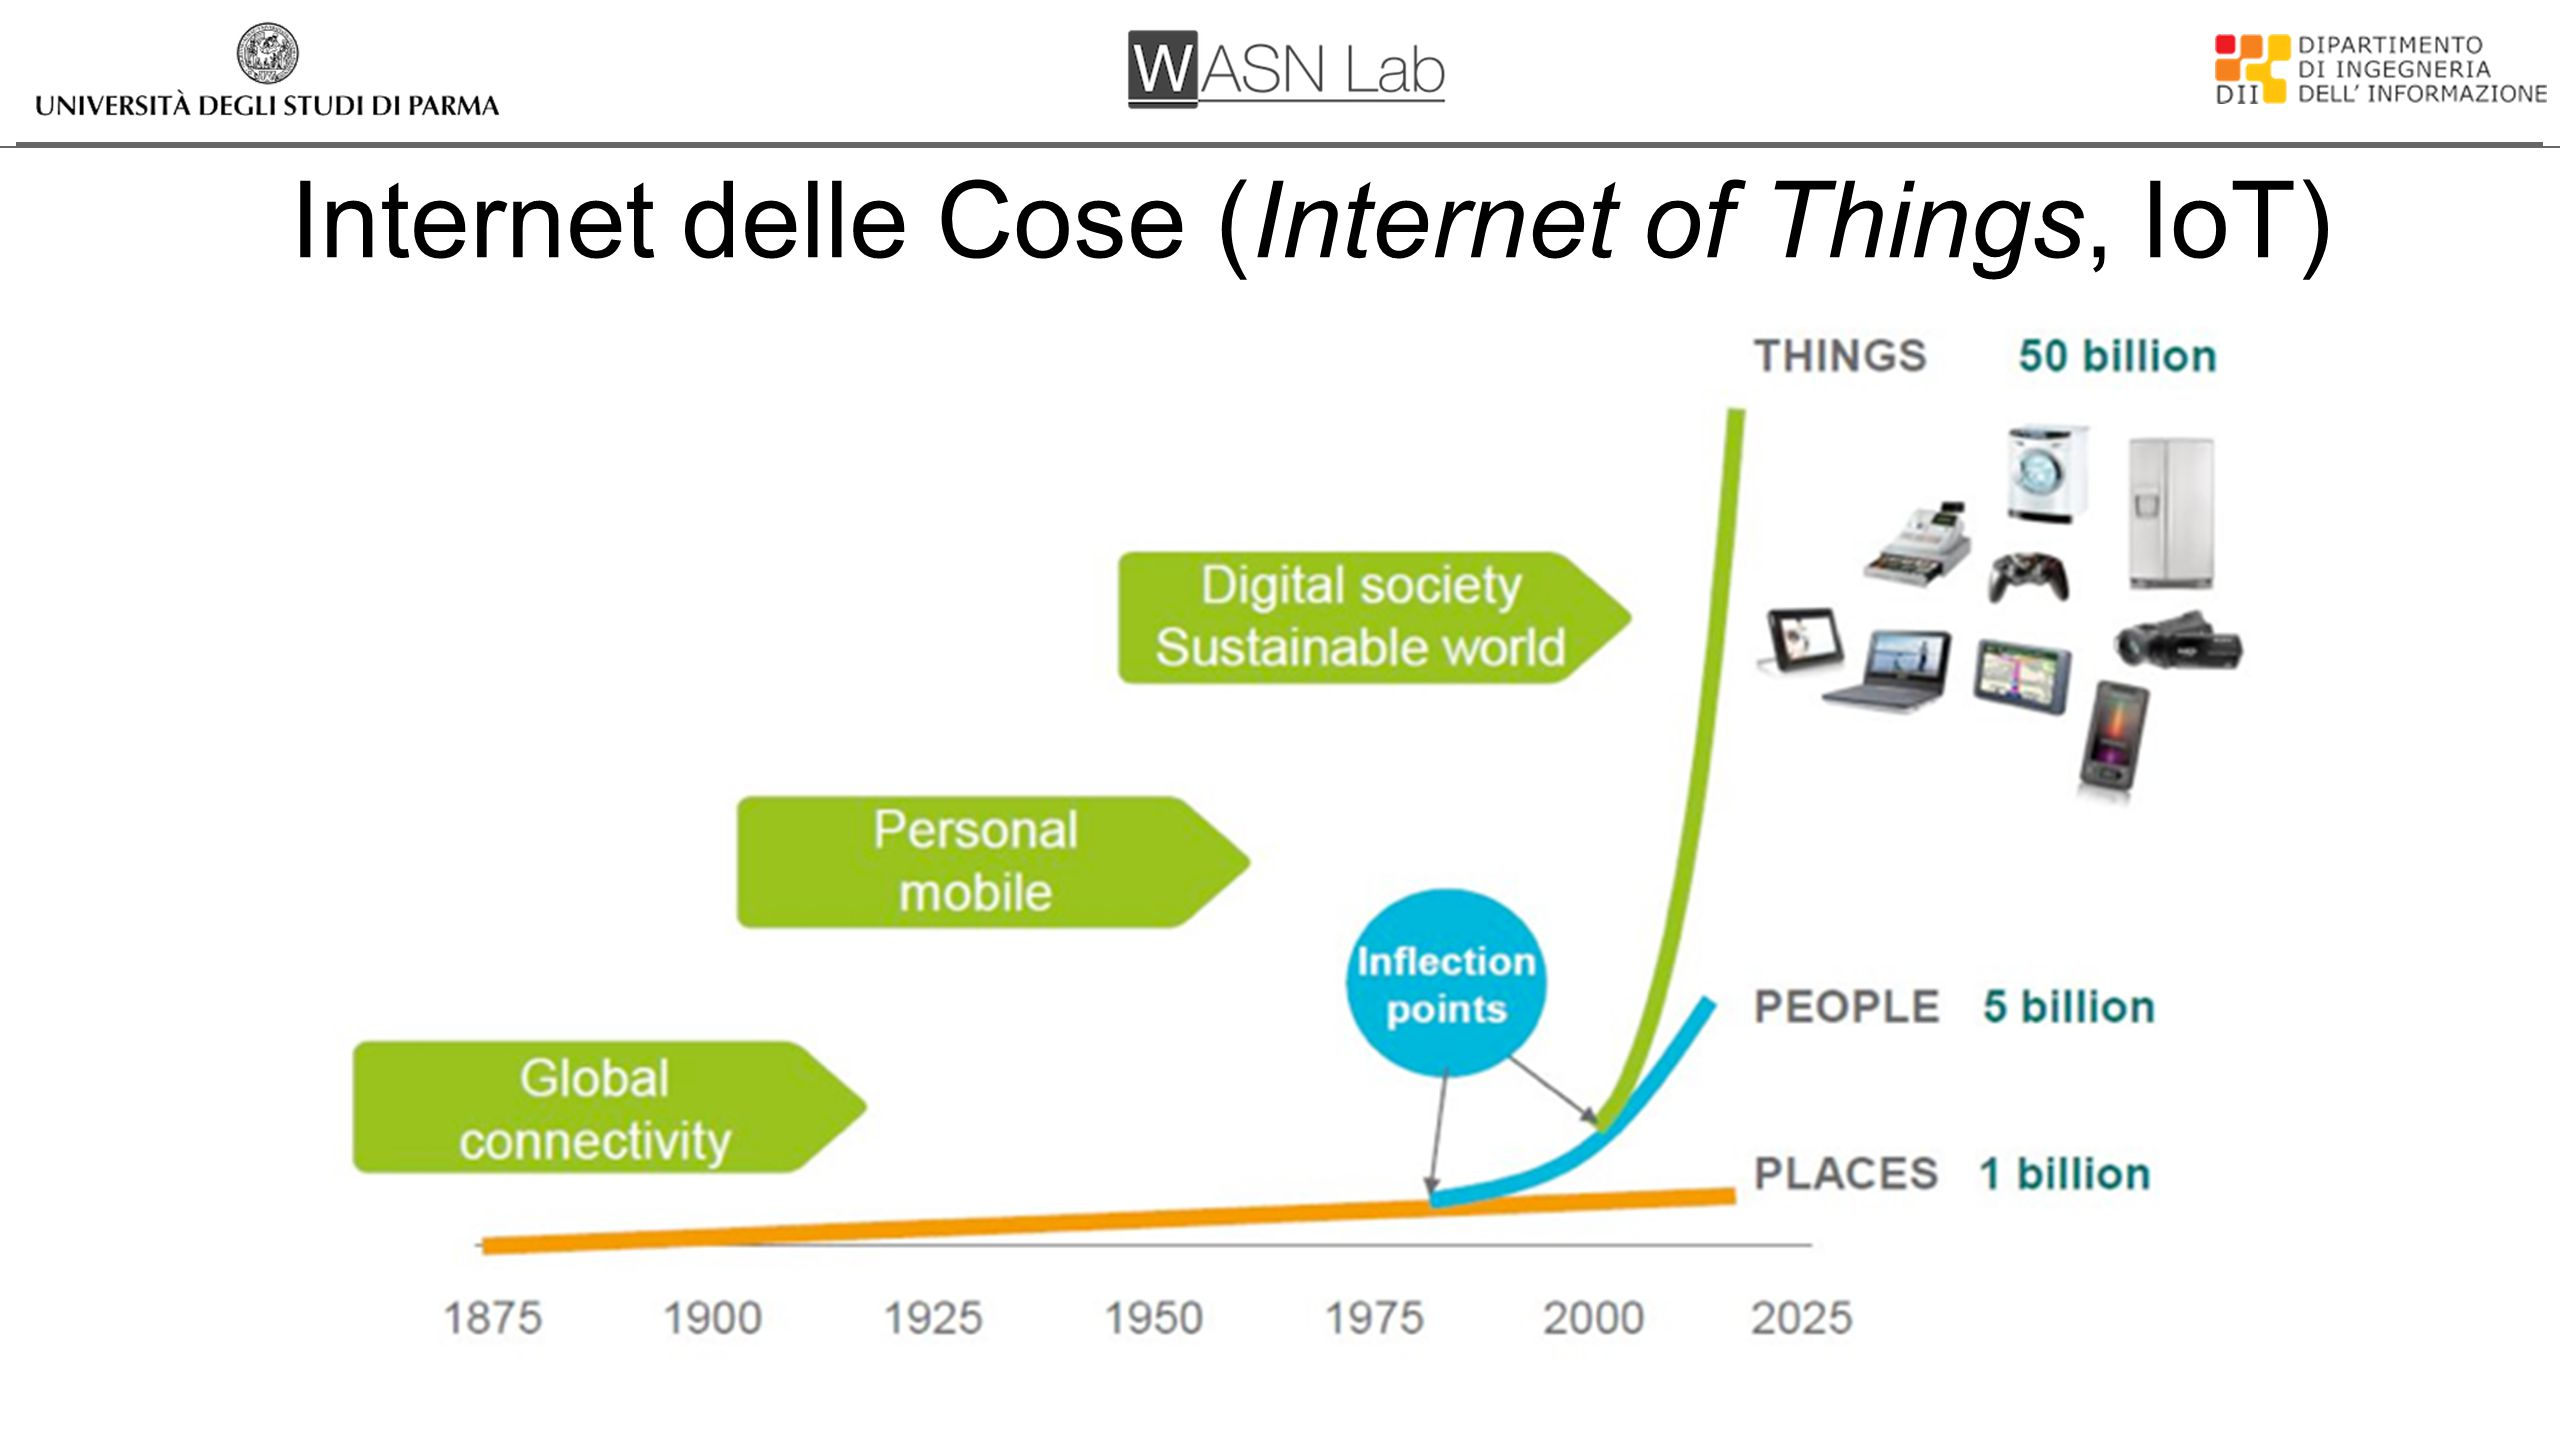 Internet delle Cose (Internet of Things, IoT)